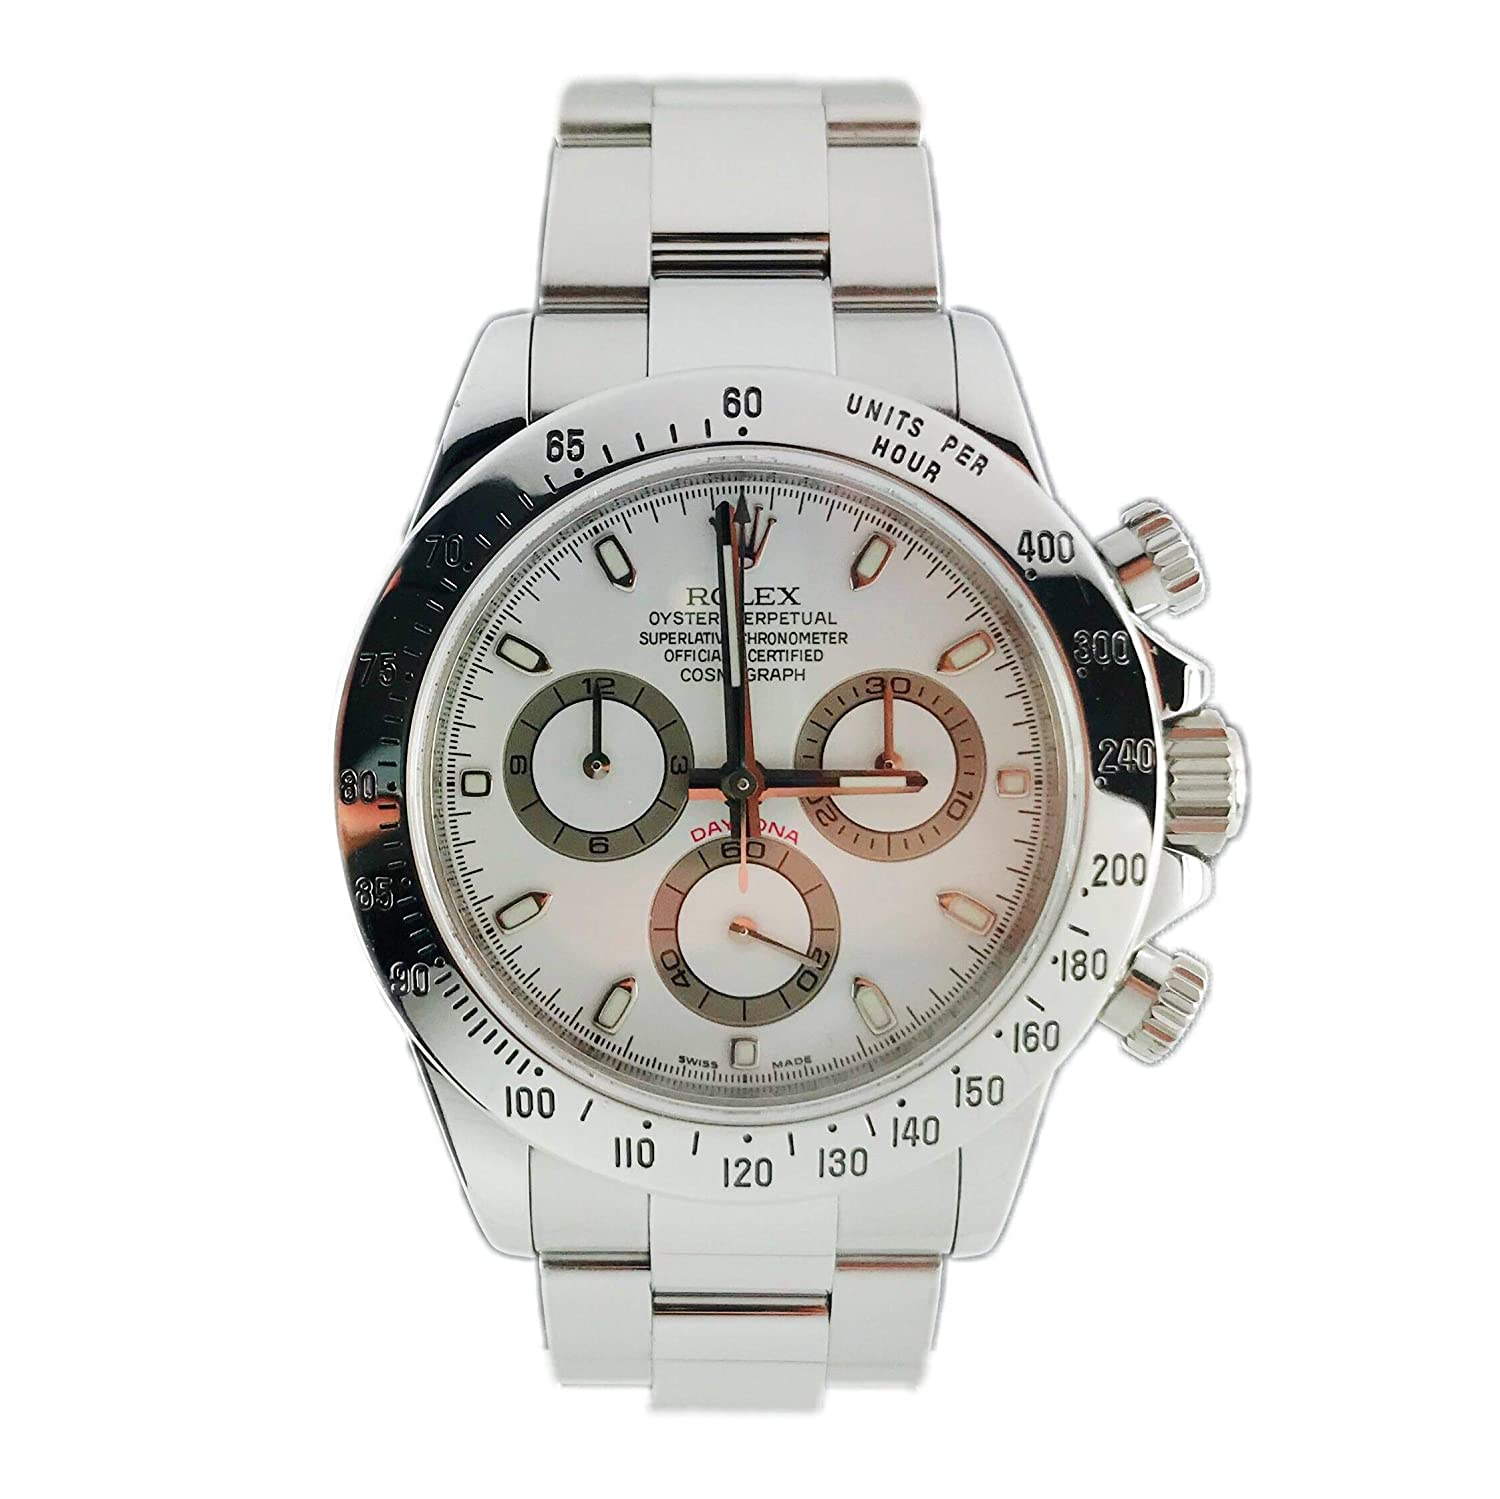 Amazon Com Rolex Daytona Cosmograph Daytona 116520 Pre Owned